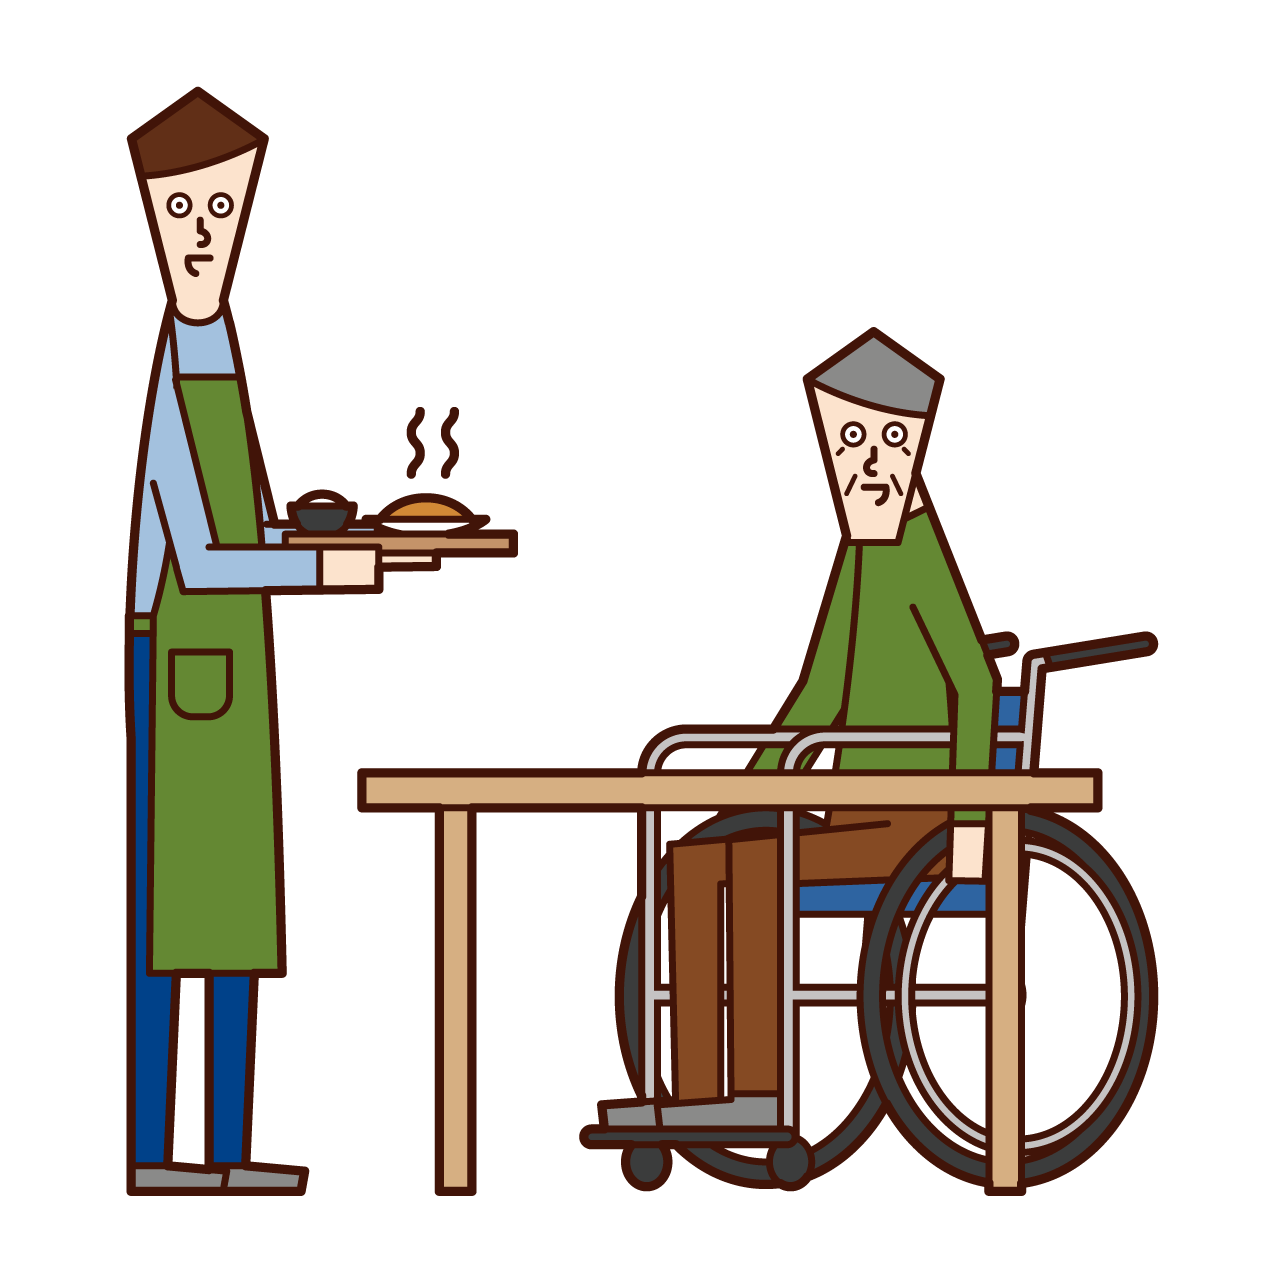 Illustration of care worker and home helper (man) who prepares meals